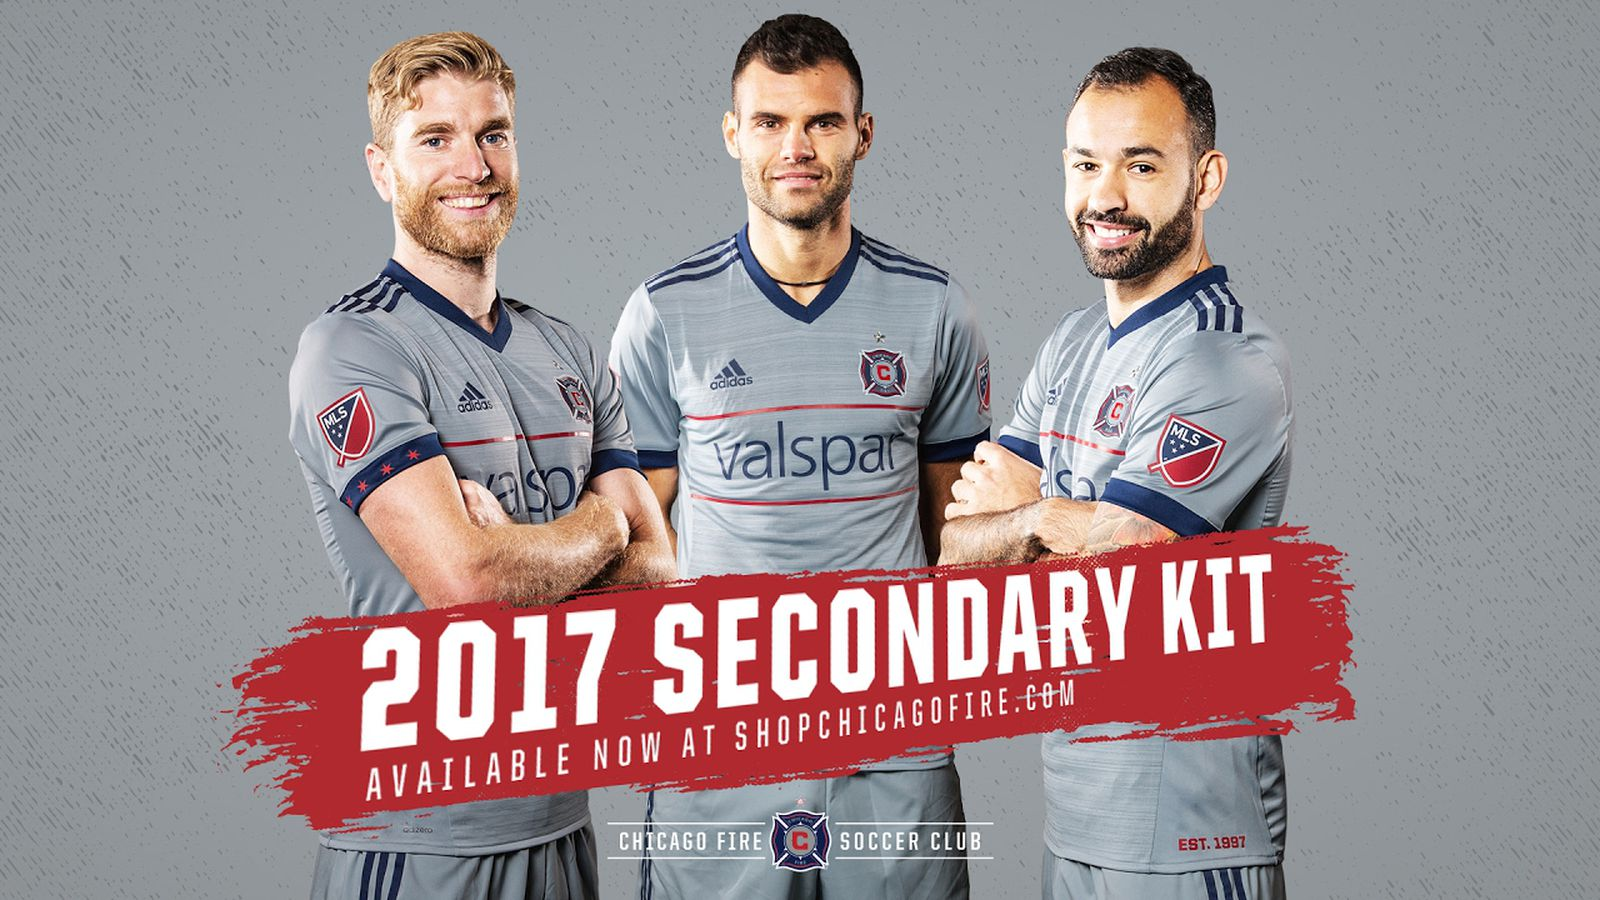 Cf972017secondarykit.0